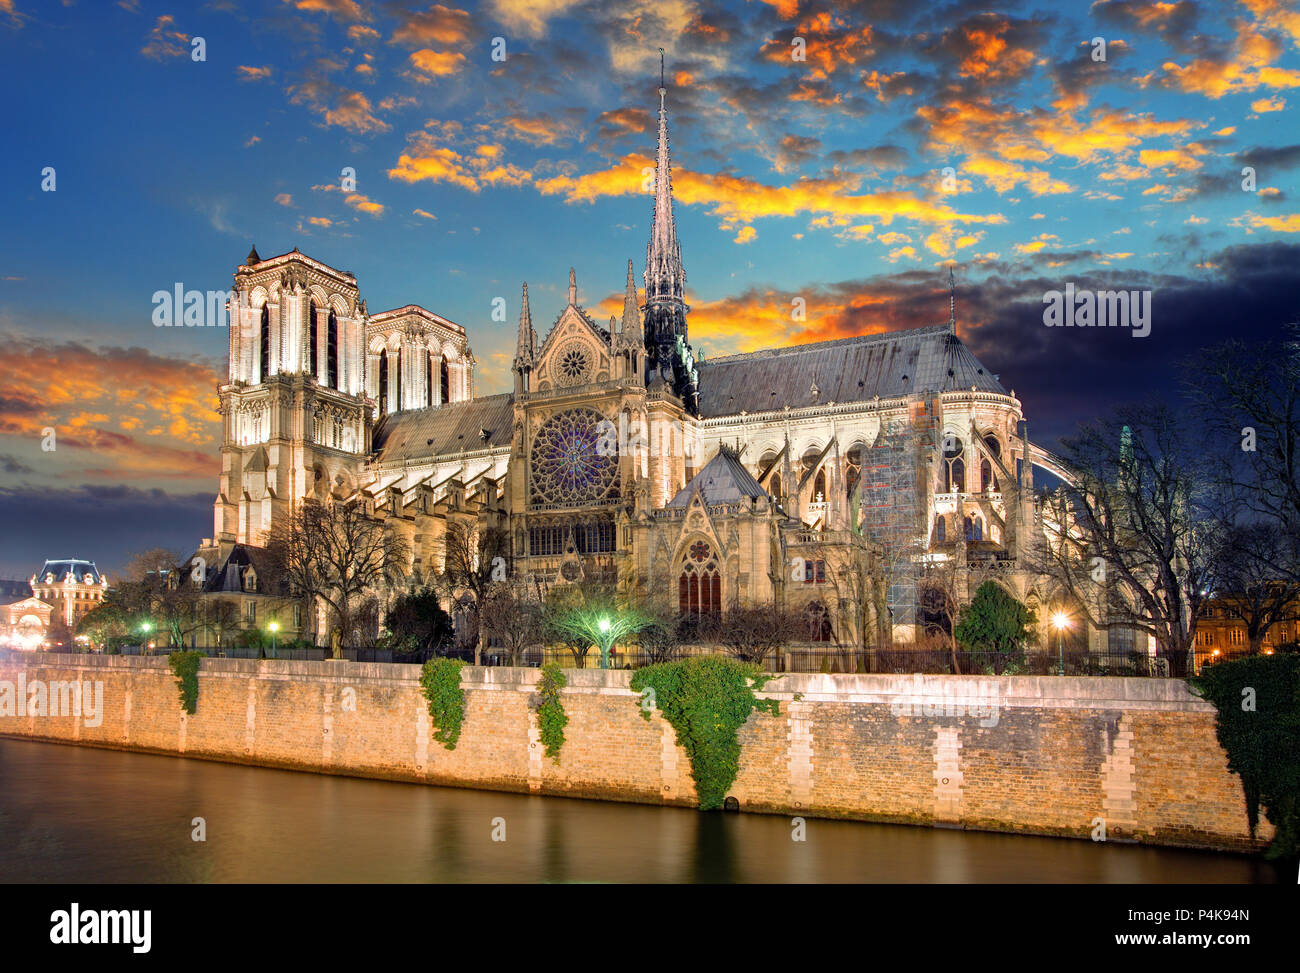 Notre Dame Cathedral at dusk in Paris, France - Stock Image